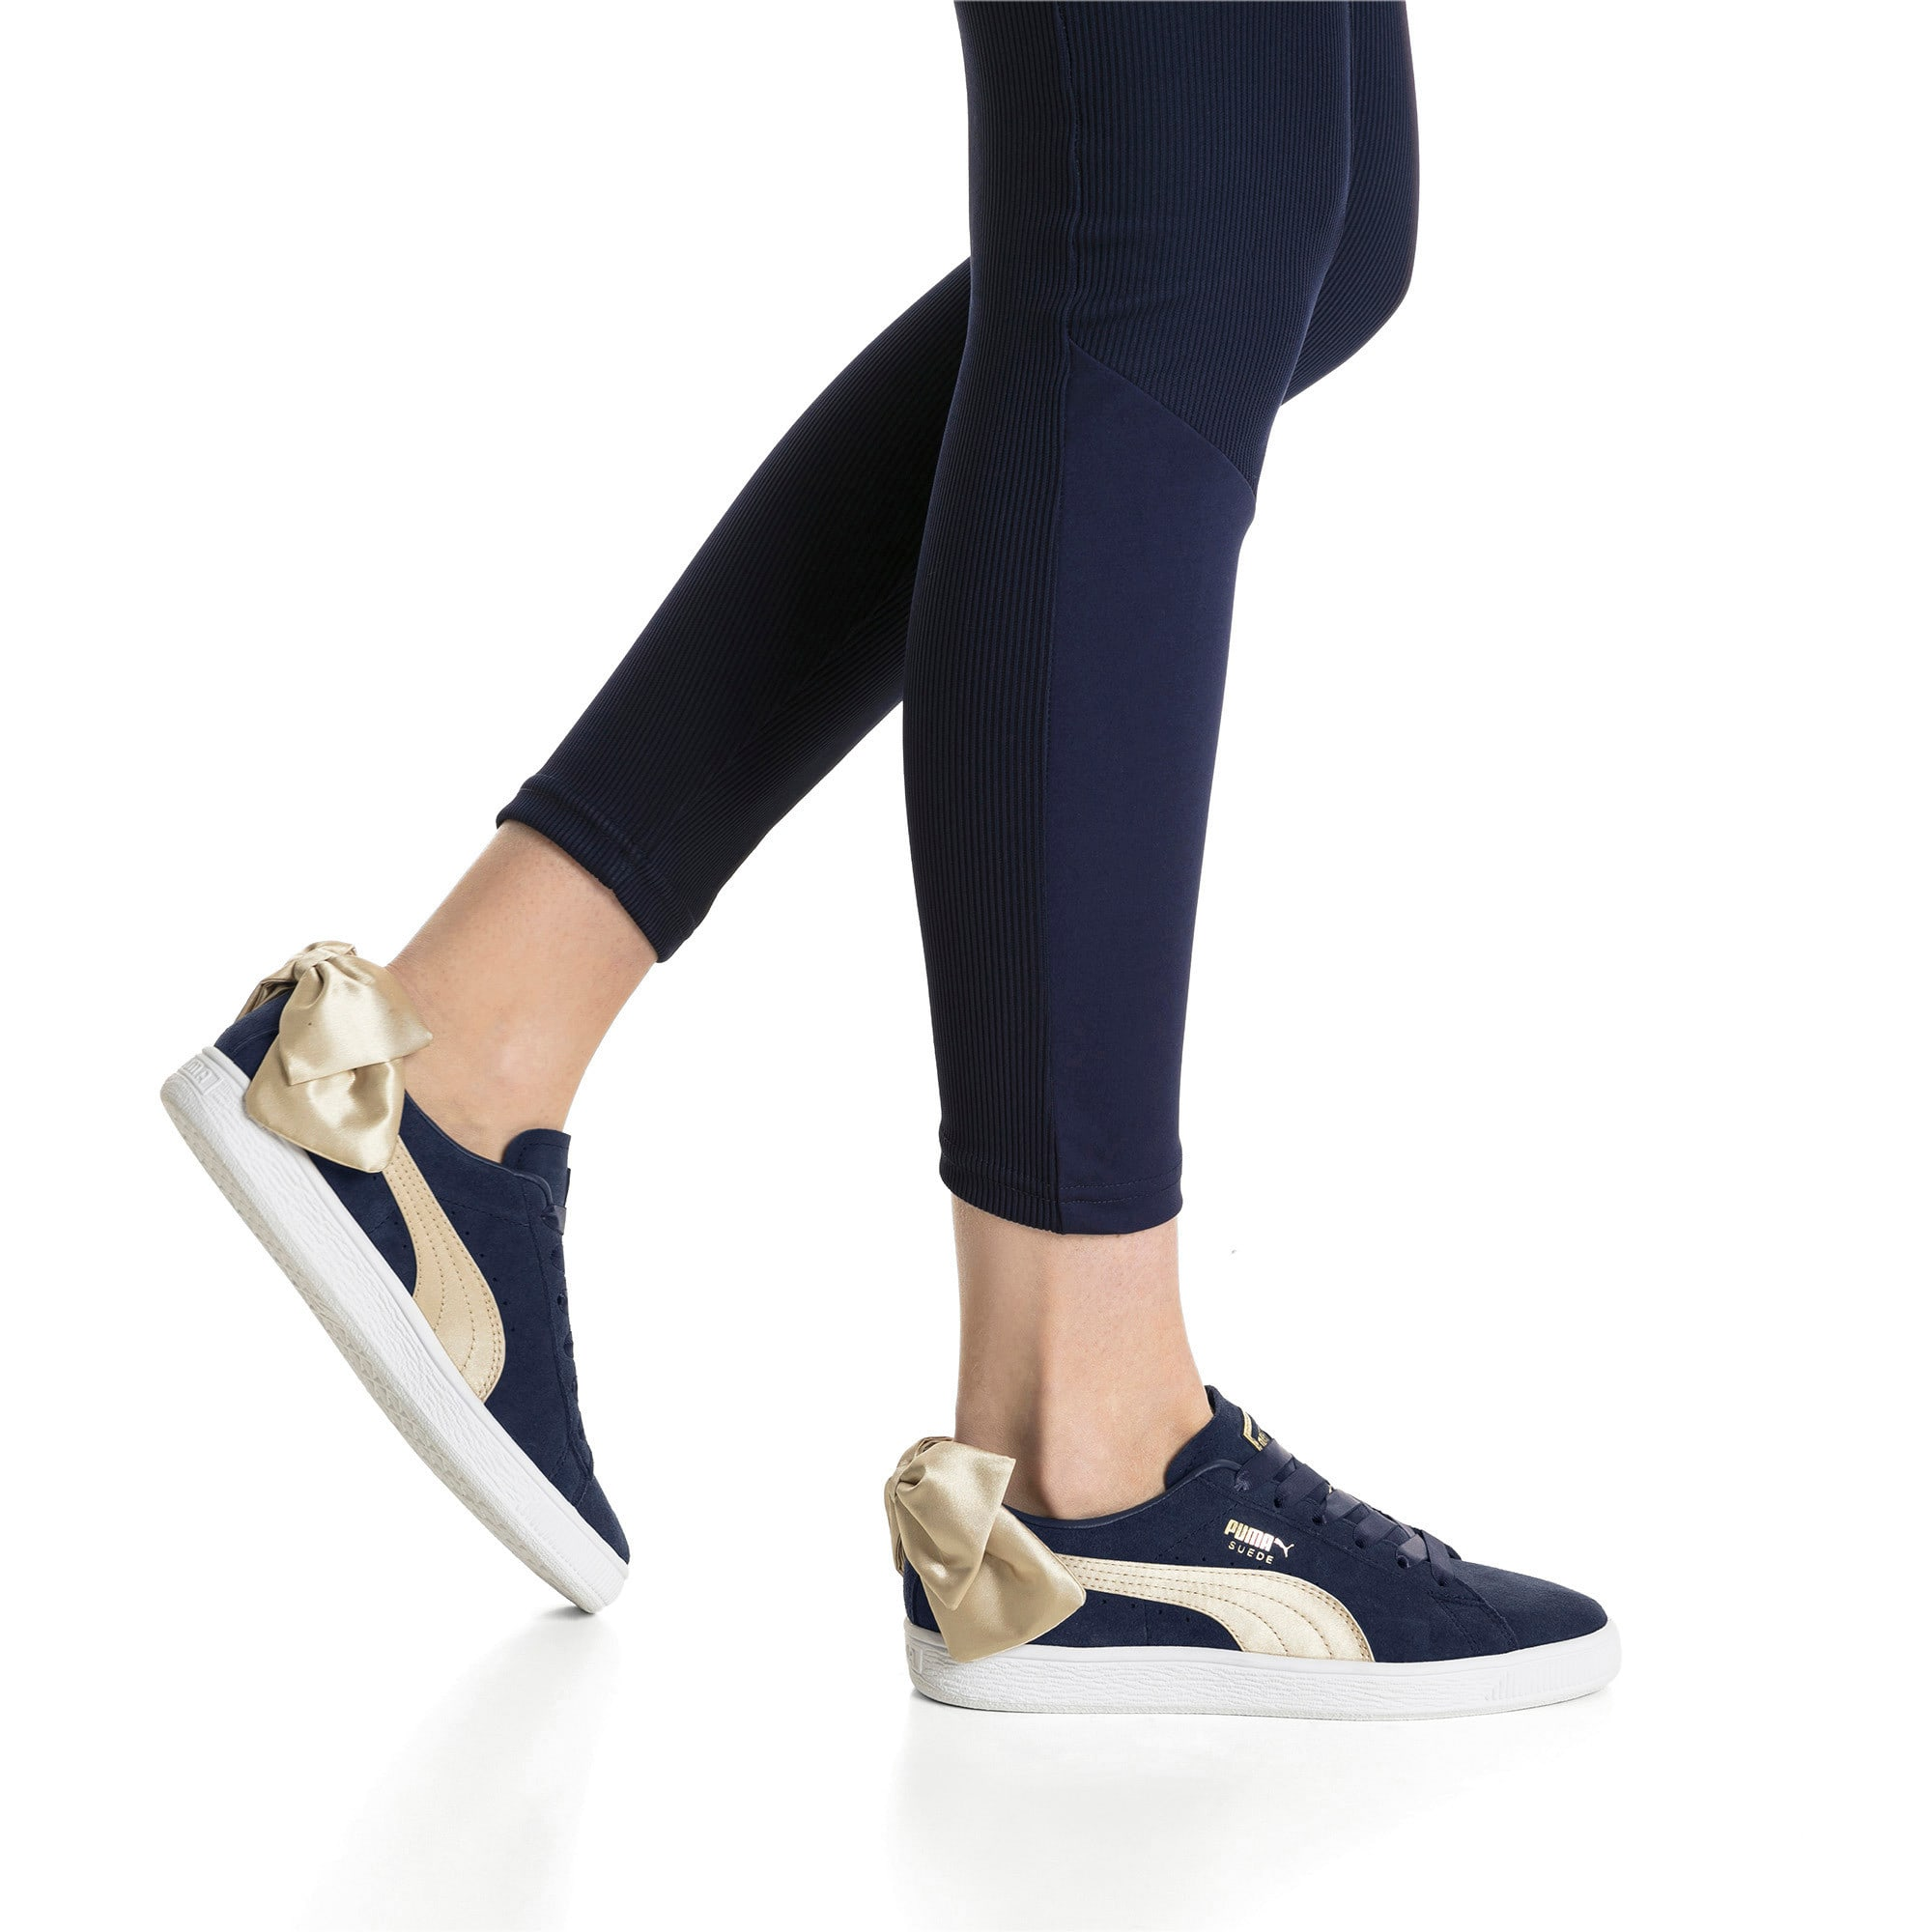 Thumbnail 7 of Suede Bow Varsity Women's Trainers, Peacoat-Metallic Gold, medium-IND